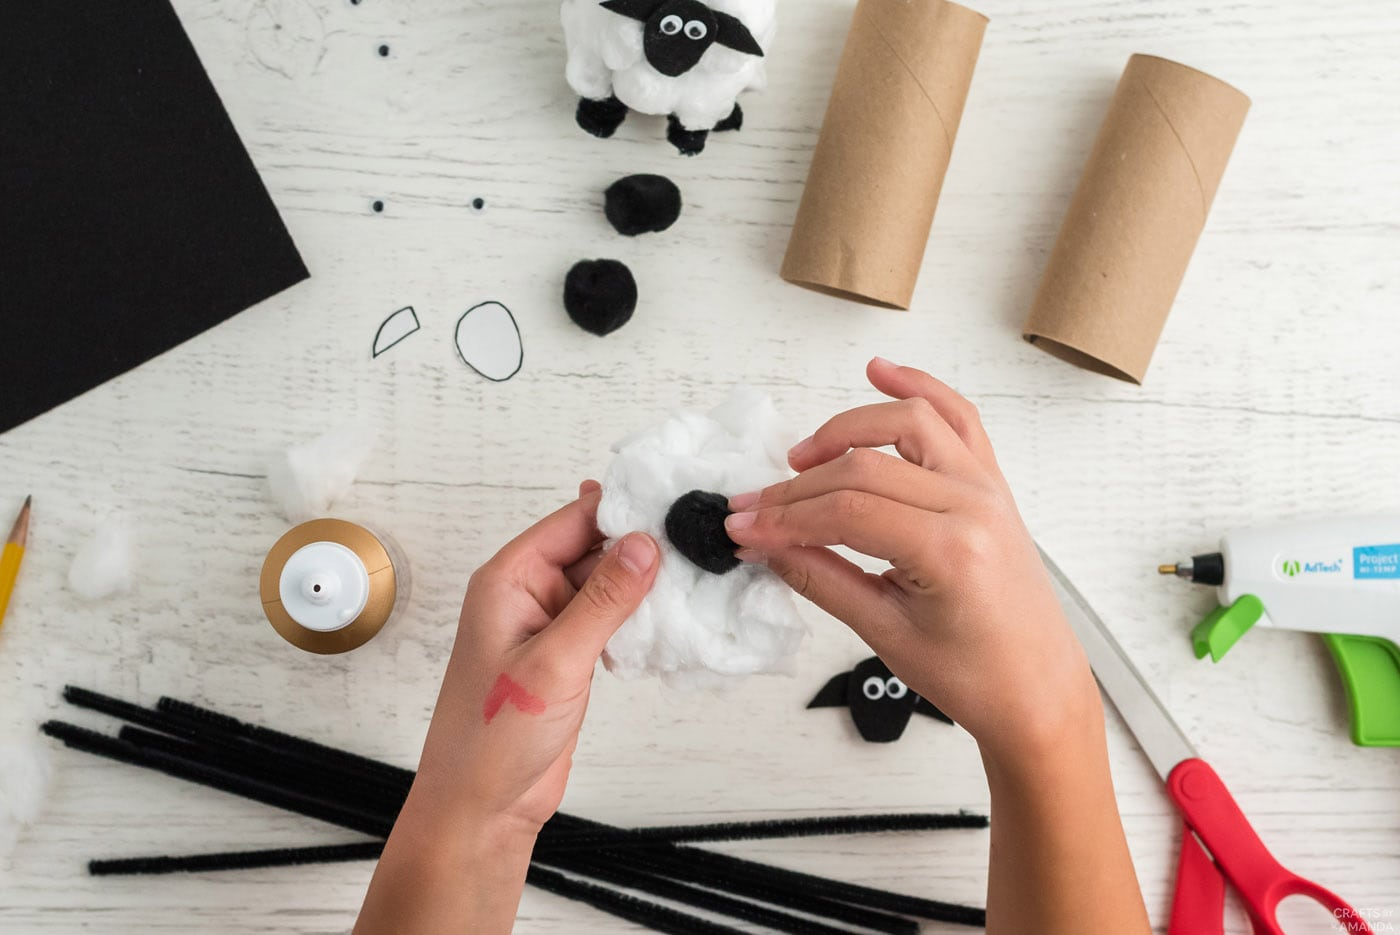 gluing a black pom pom onto cotton ball covered cardboard tube